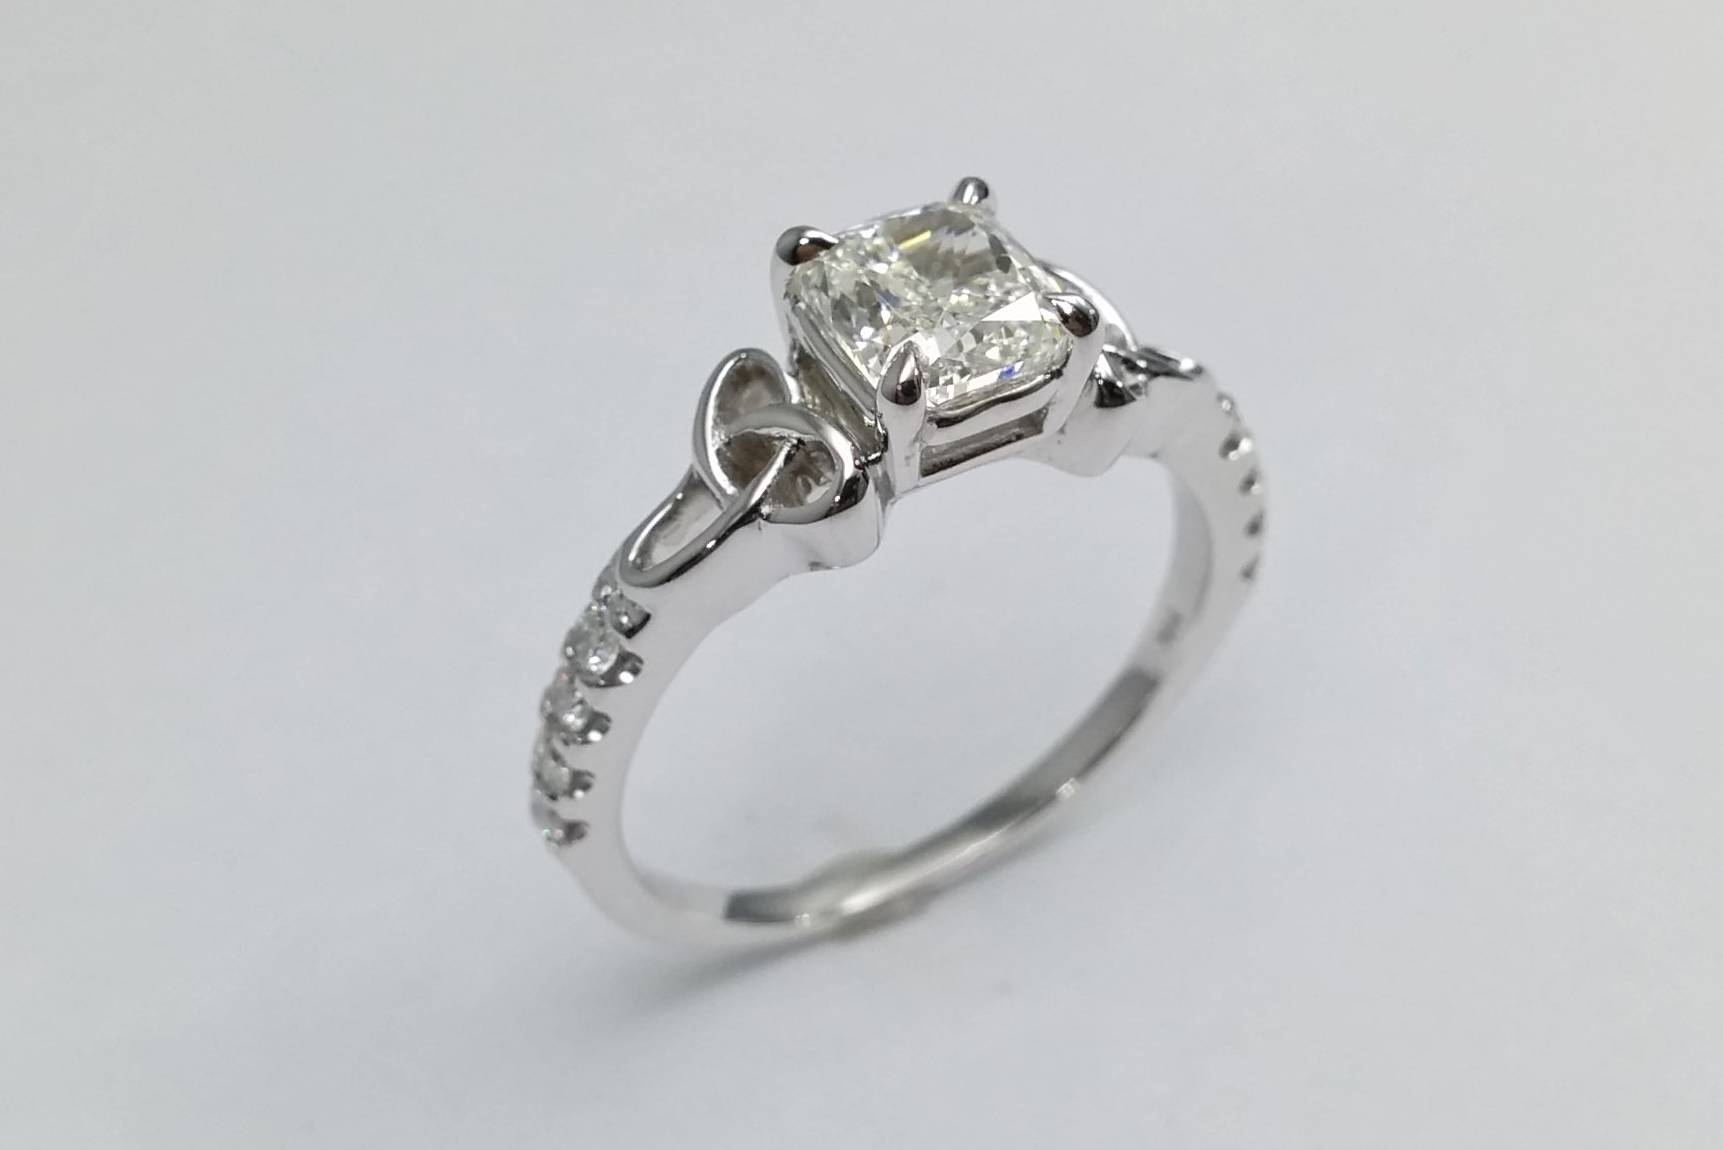 Celtic – Engagement Rings From Mdc Diamonds Nyc For Celtic Knot Engagement Rings (View 3 of 15)